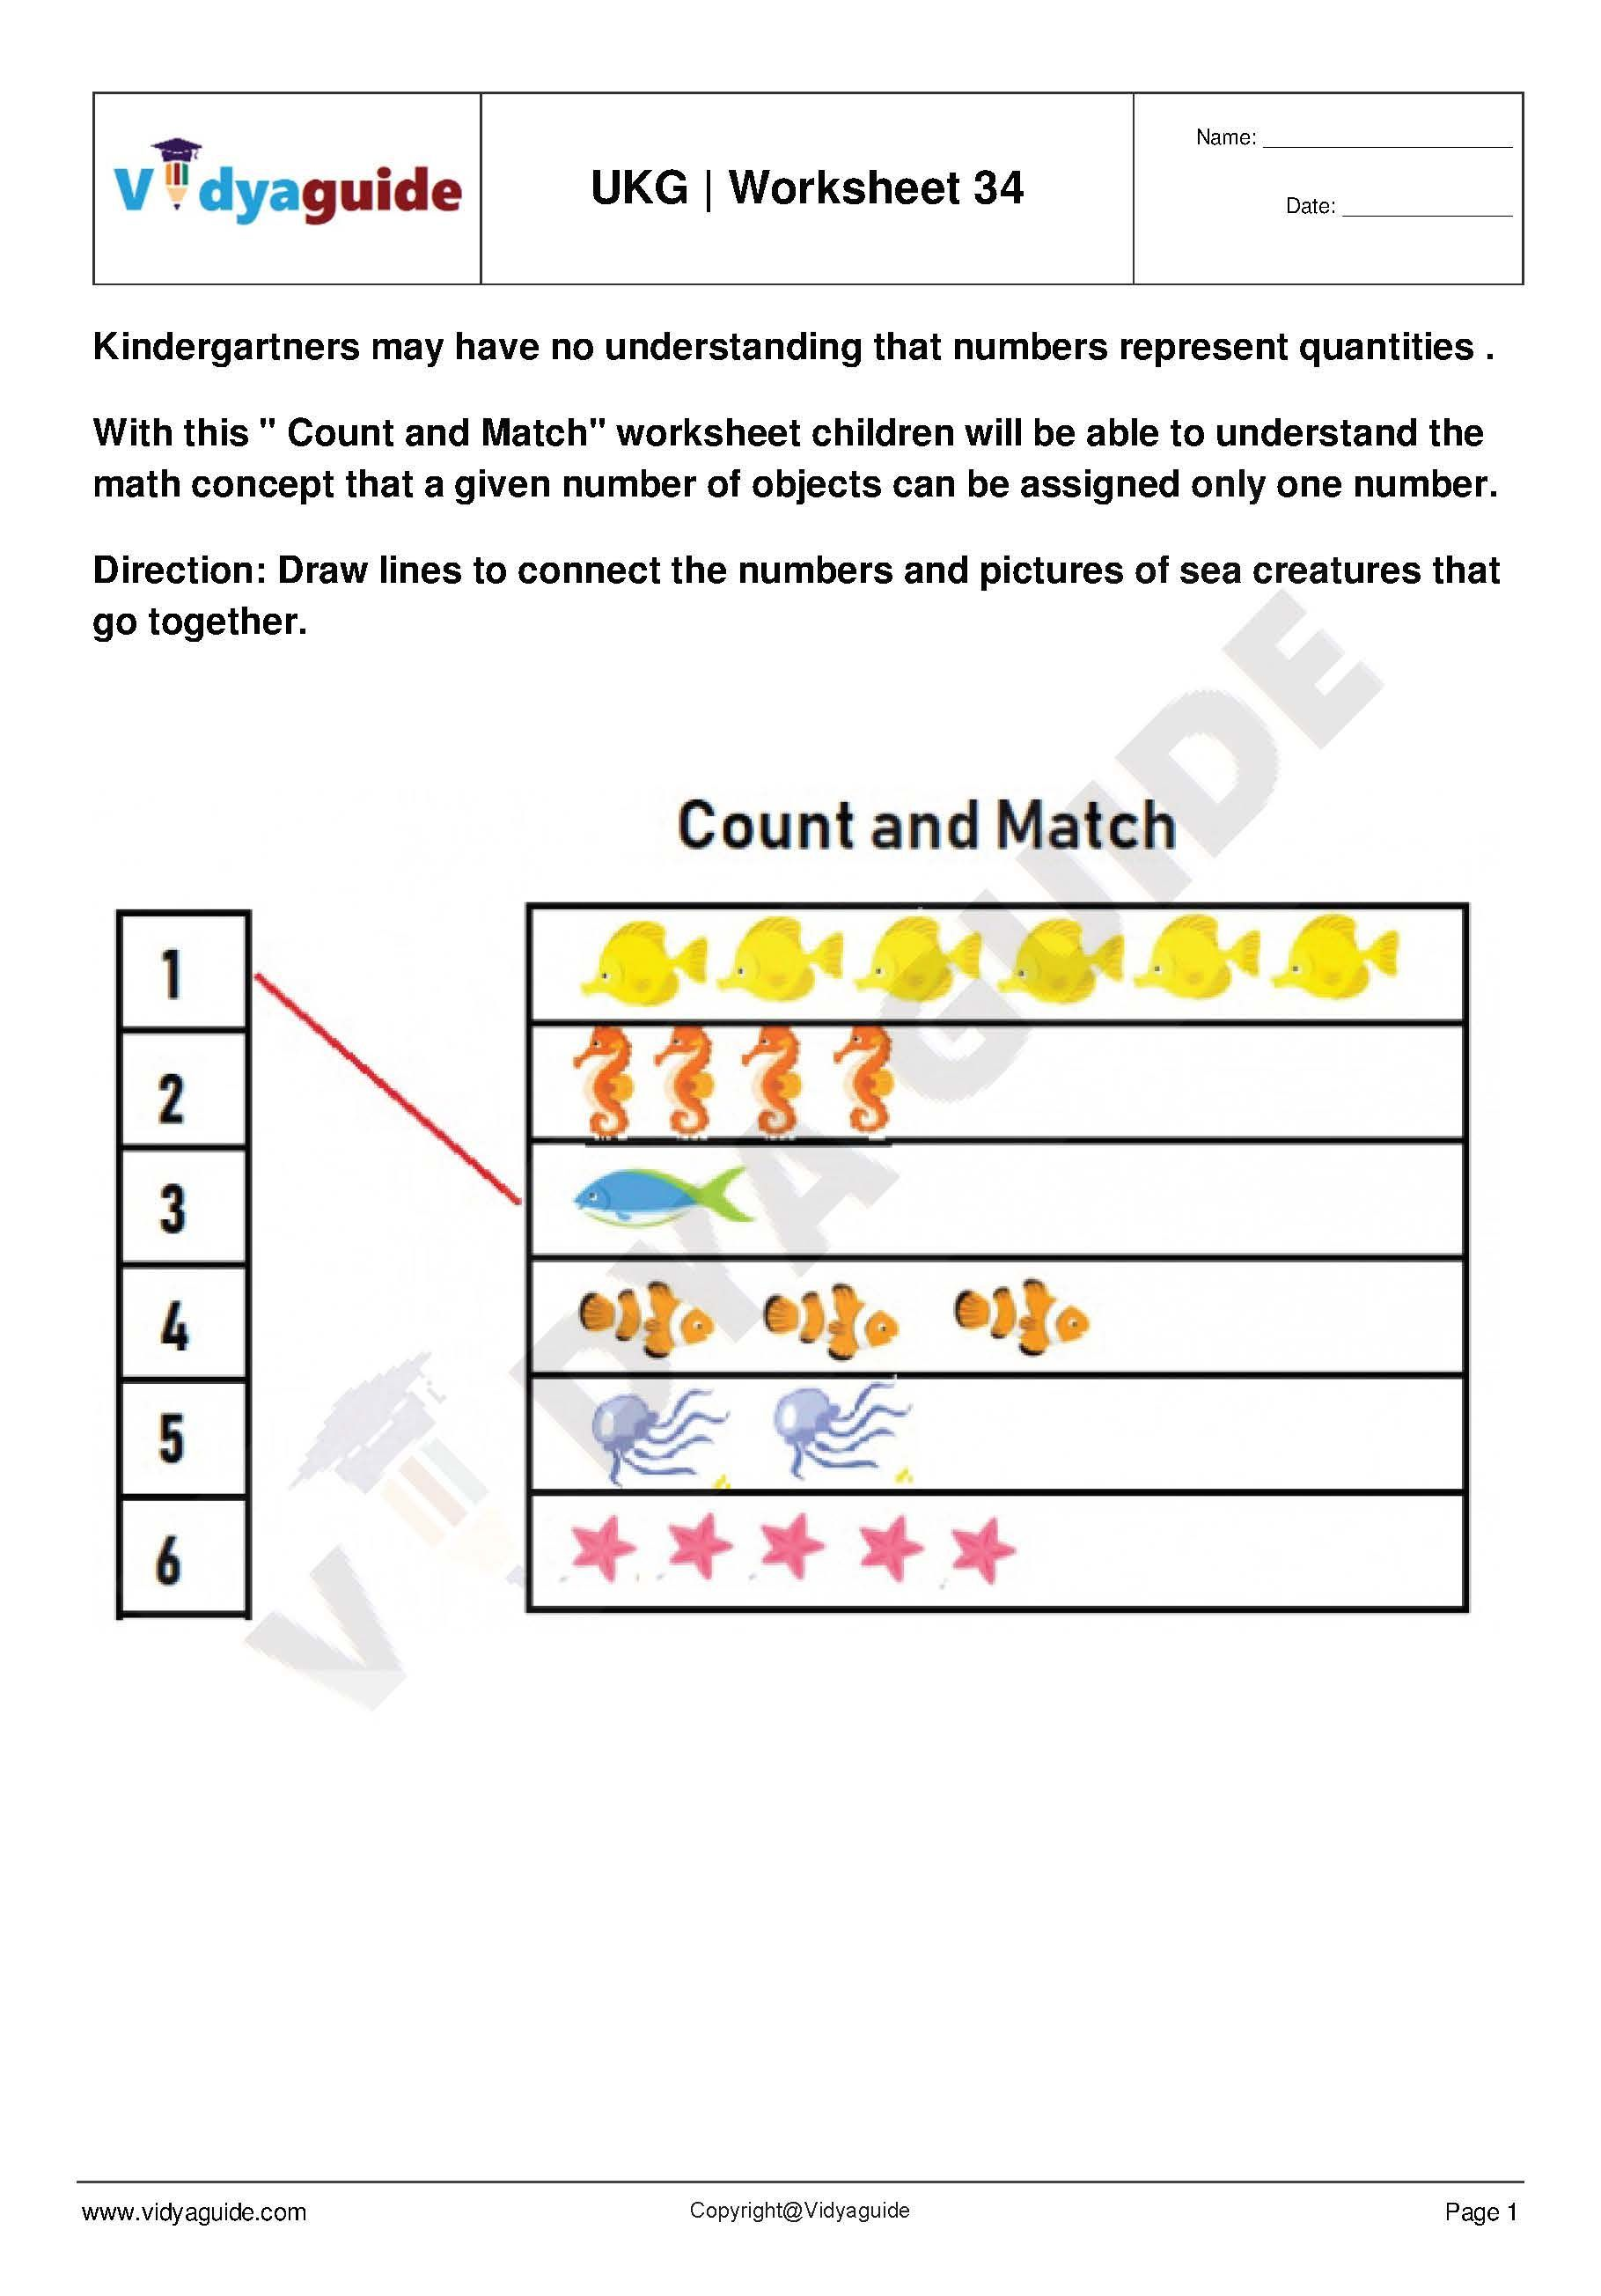 Download free kindergarten (UKG) printable worksheets from